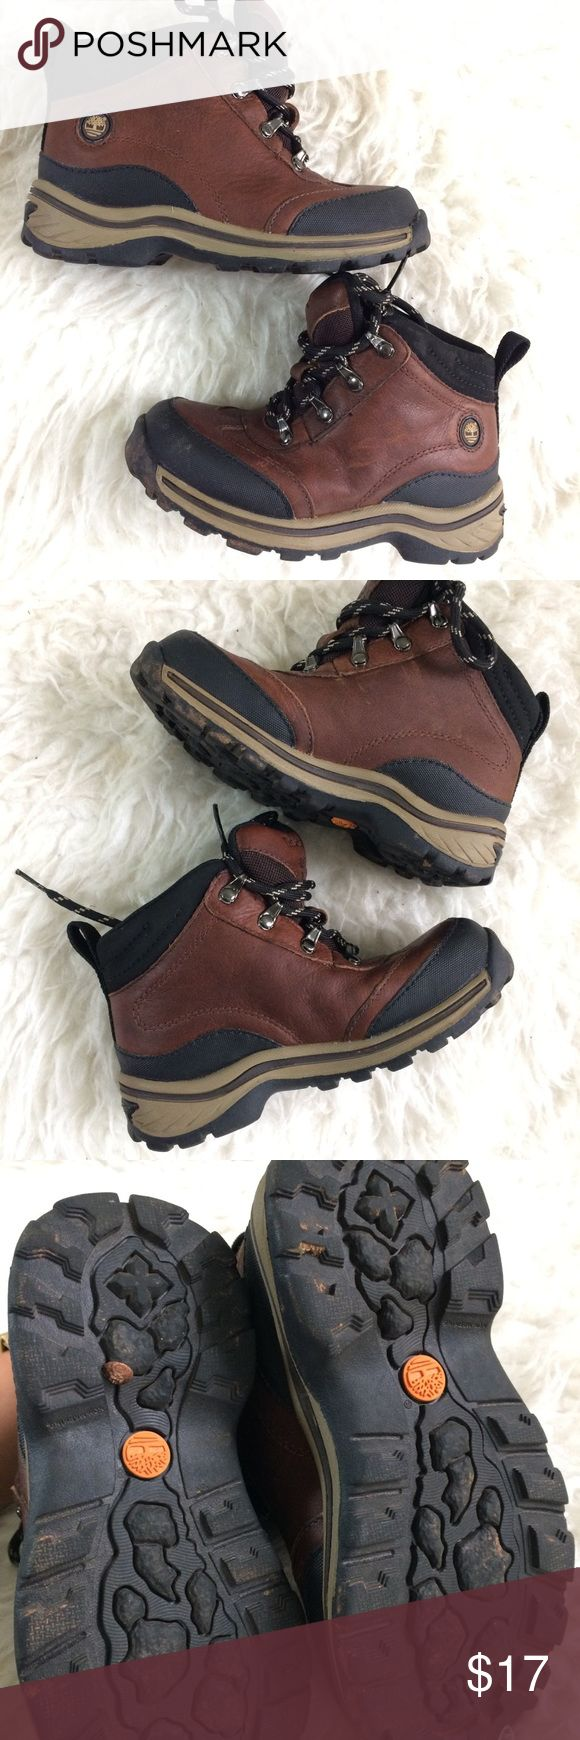 Boys brown Timberland boots size 10 Great condition Timberland boys boots toddler size 10. Minimal signs of wear, as pictured. Timberland Shoes Boots